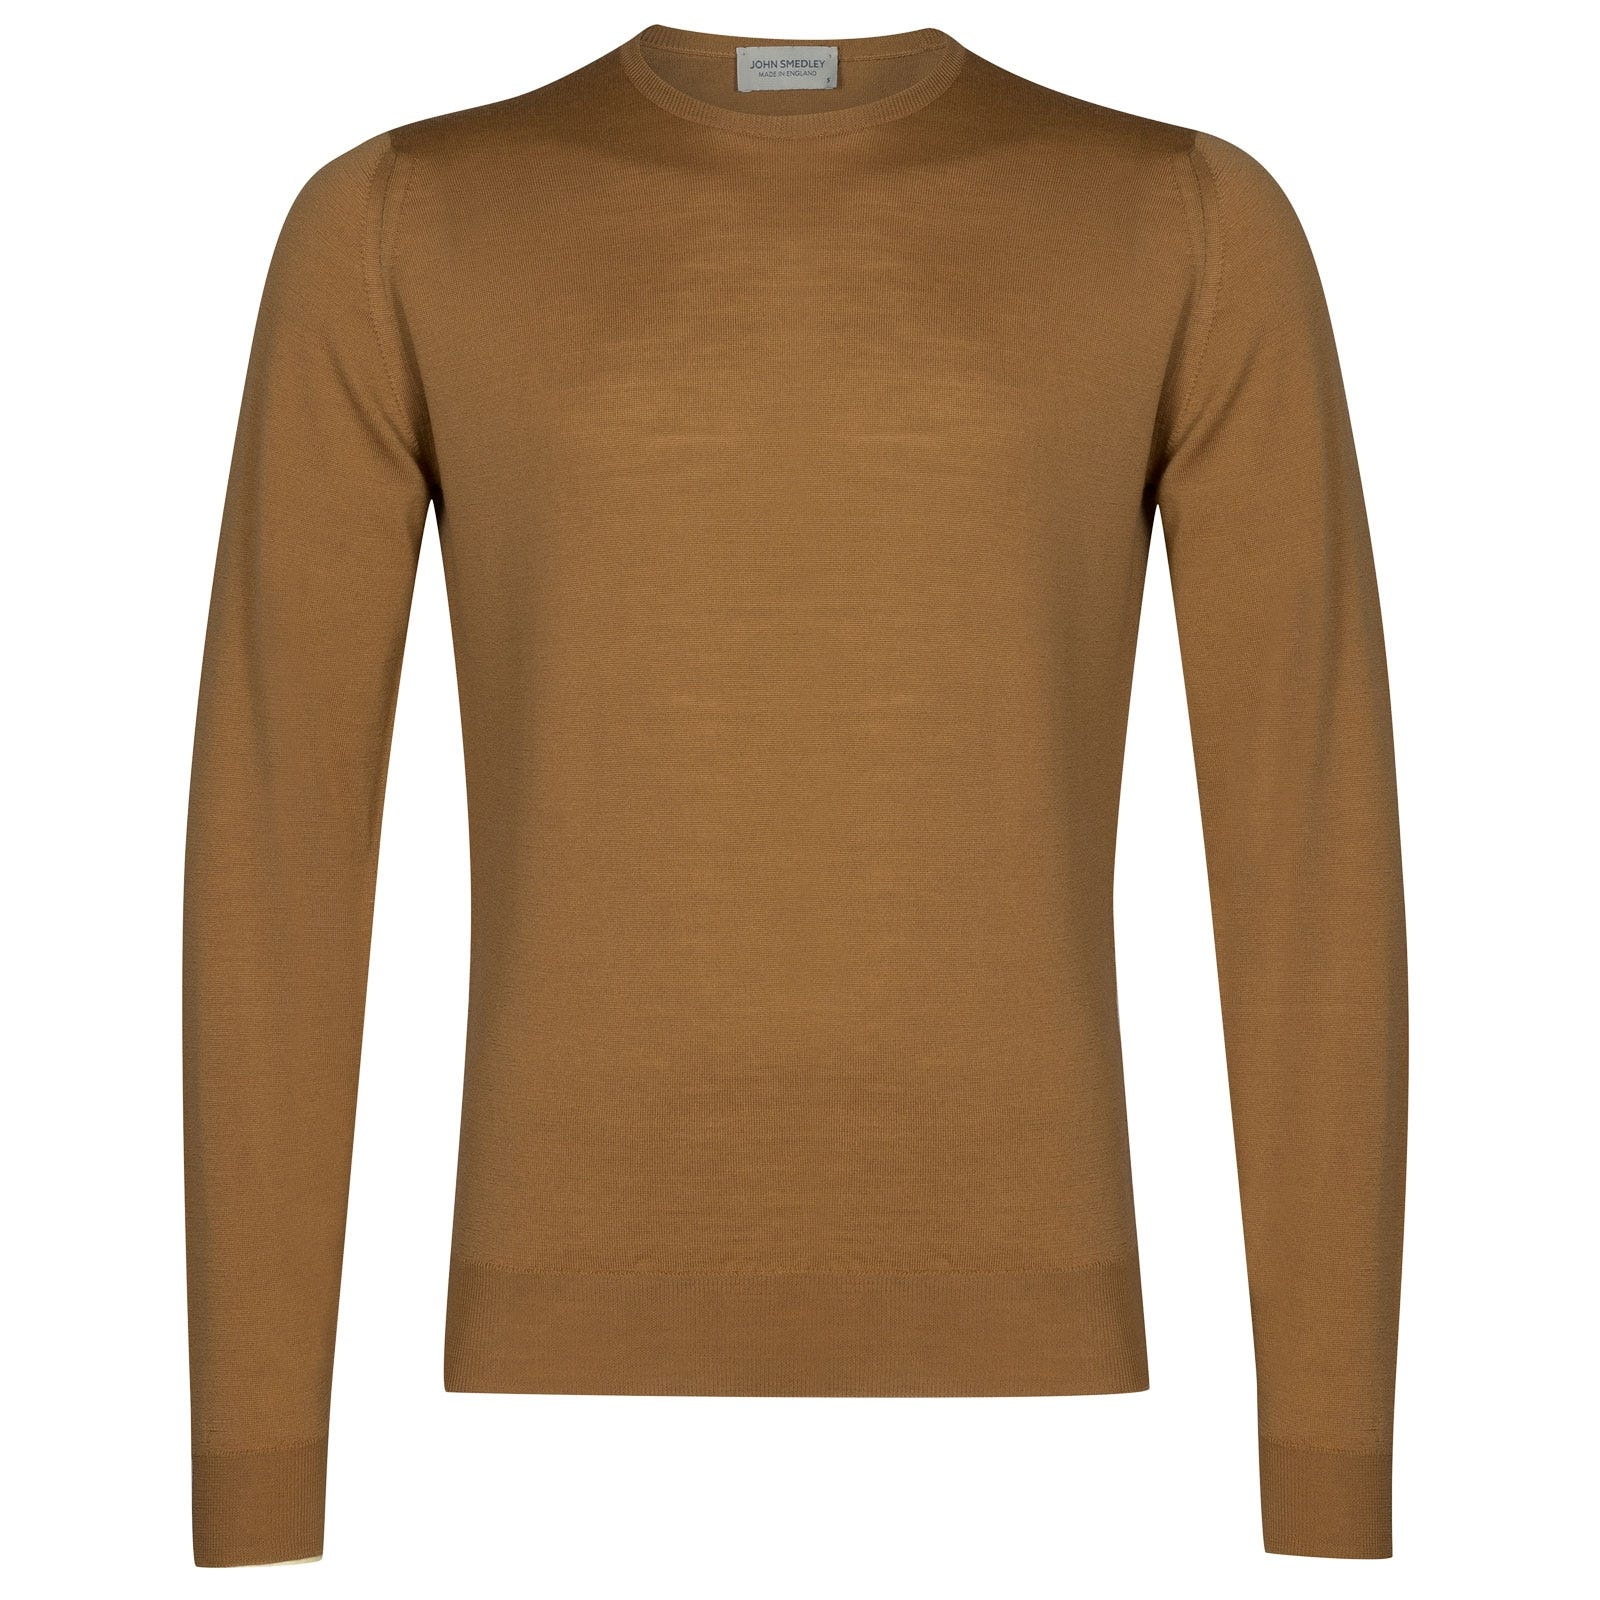 John Smedley Lundy in Camel Pullover-SML